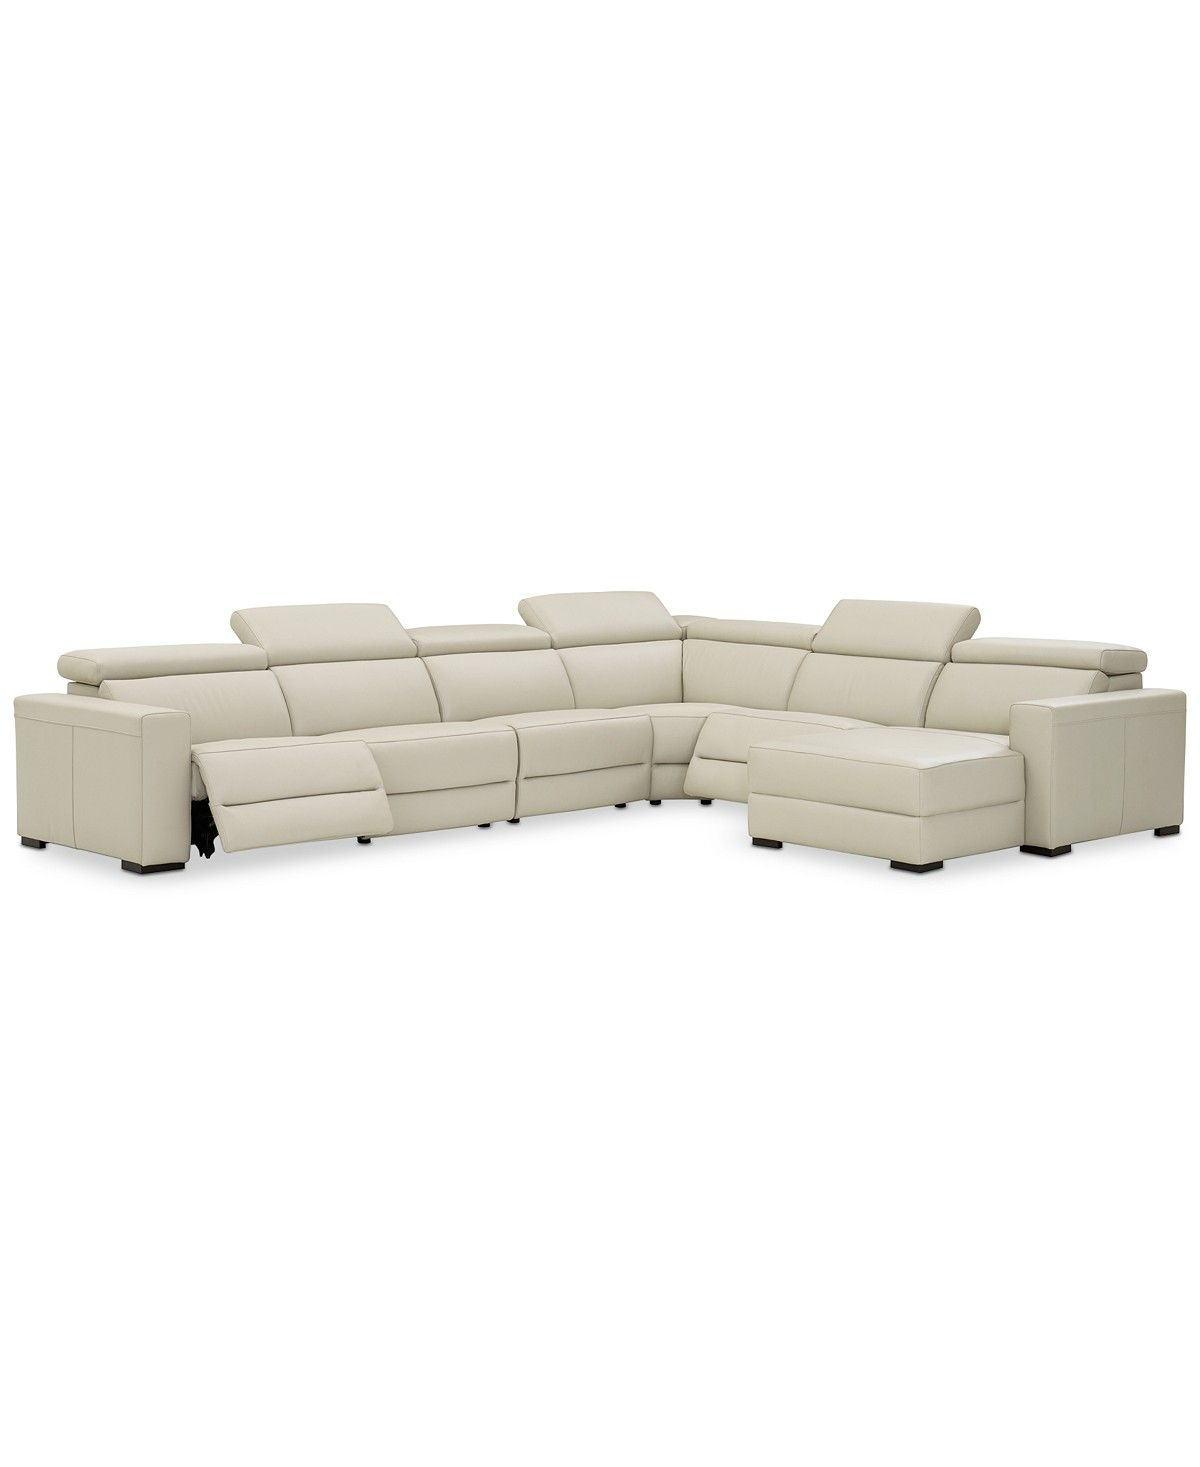 Fine Nevio 6 Pc Leather Sectional Sofa With Chaise 2 Power Ocoug Best Dining Table And Chair Ideas Images Ocougorg